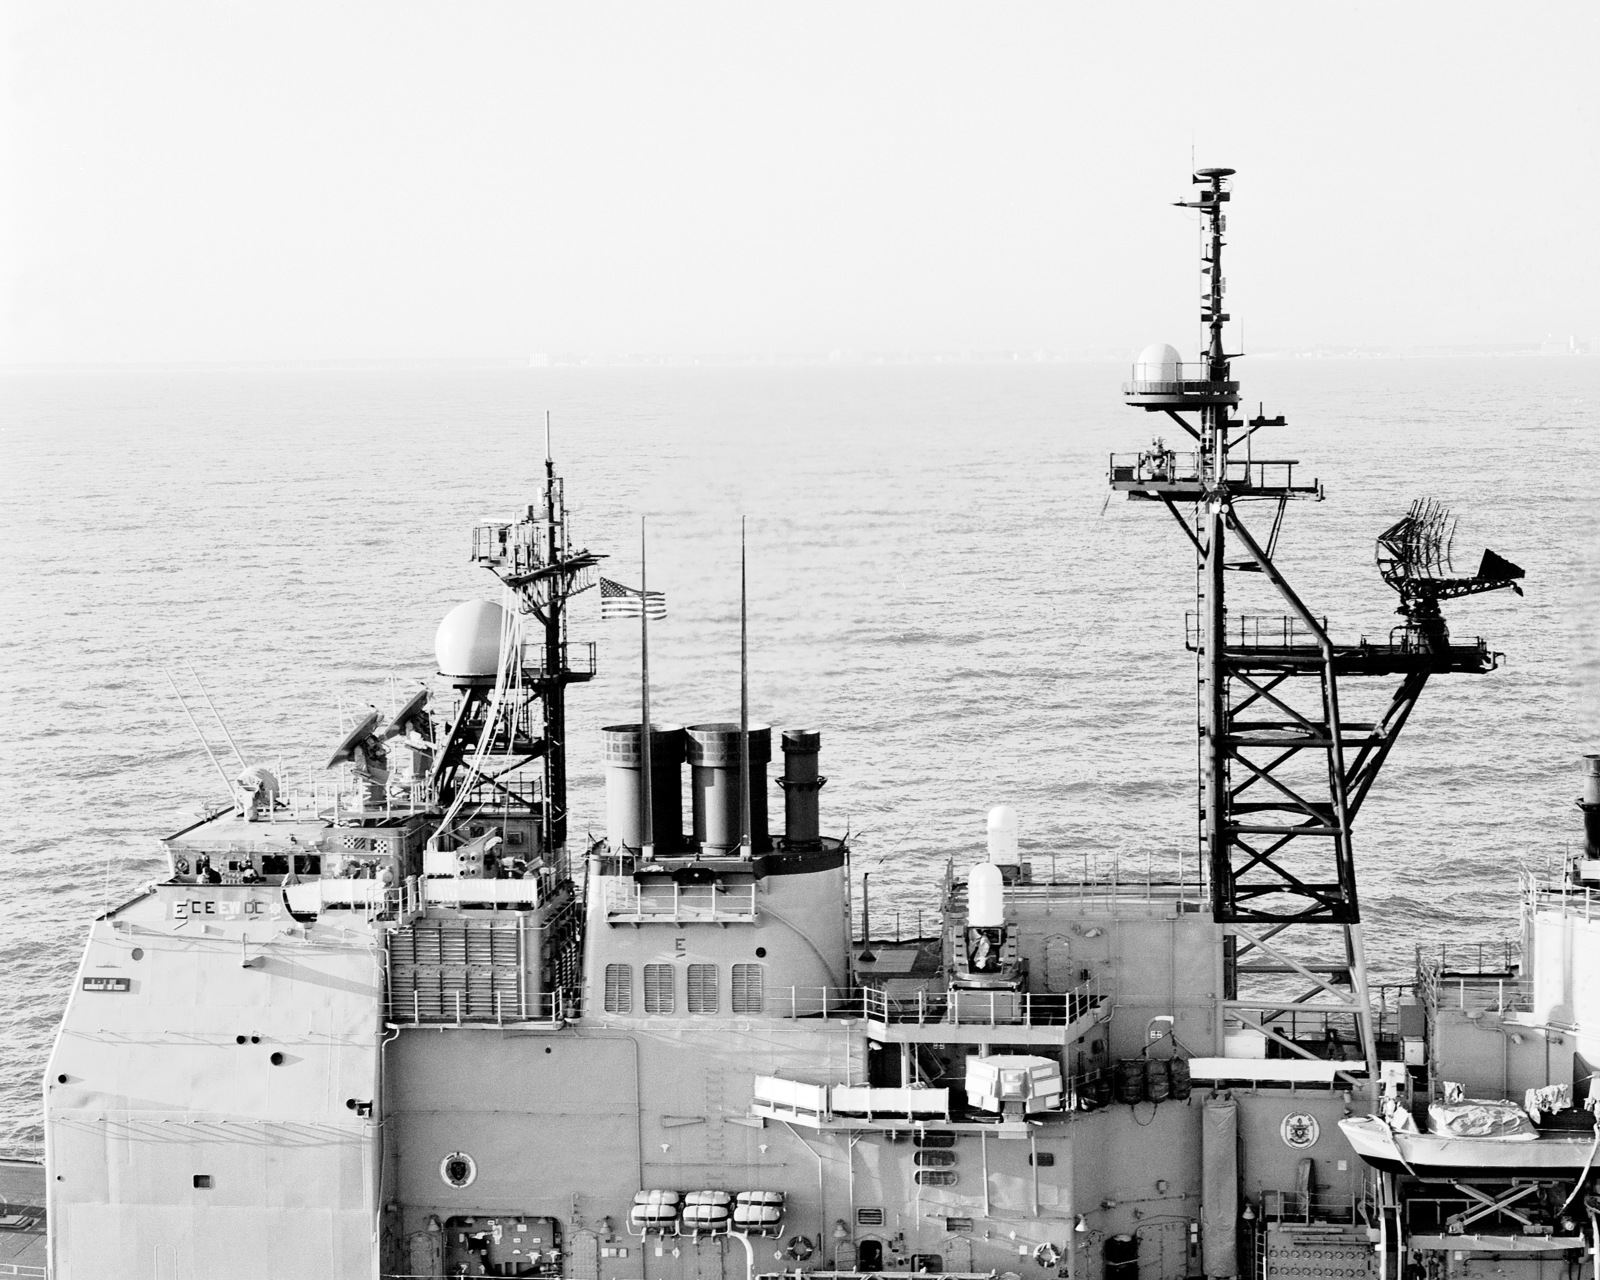 A close-up view of the antenna masts and bridge structure aboard the guided missile cruiser USS YORKTOWN (CG 48), as seen from off the ship's port beam